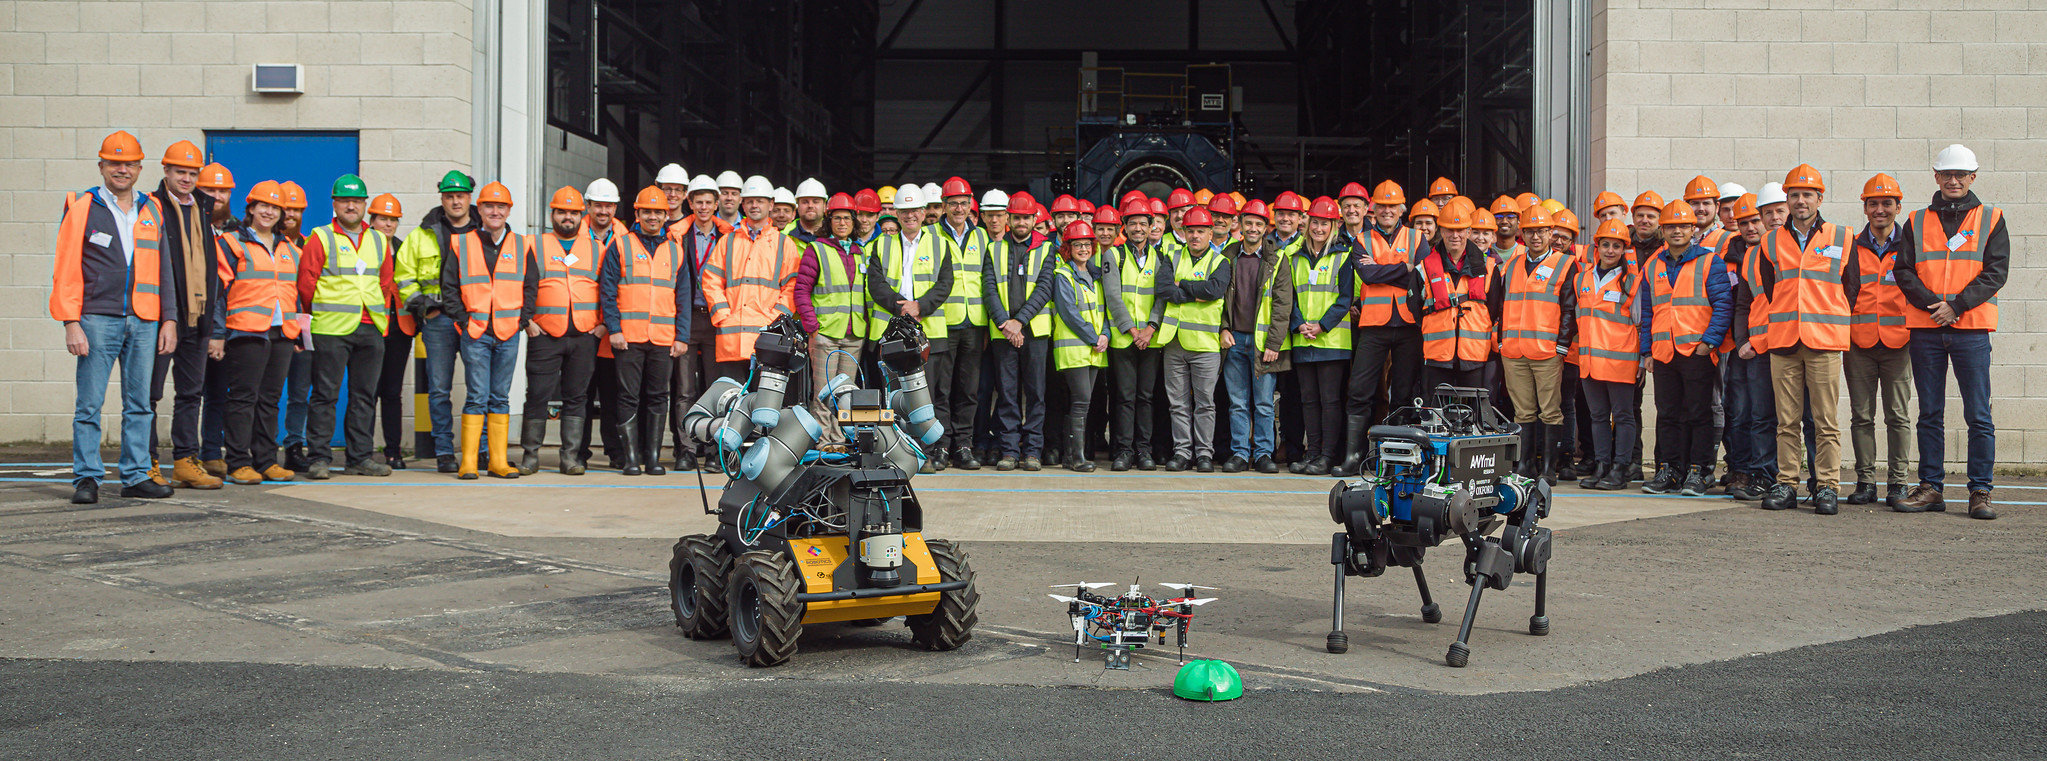 Orca hub showcases offshore robotics technology in world first